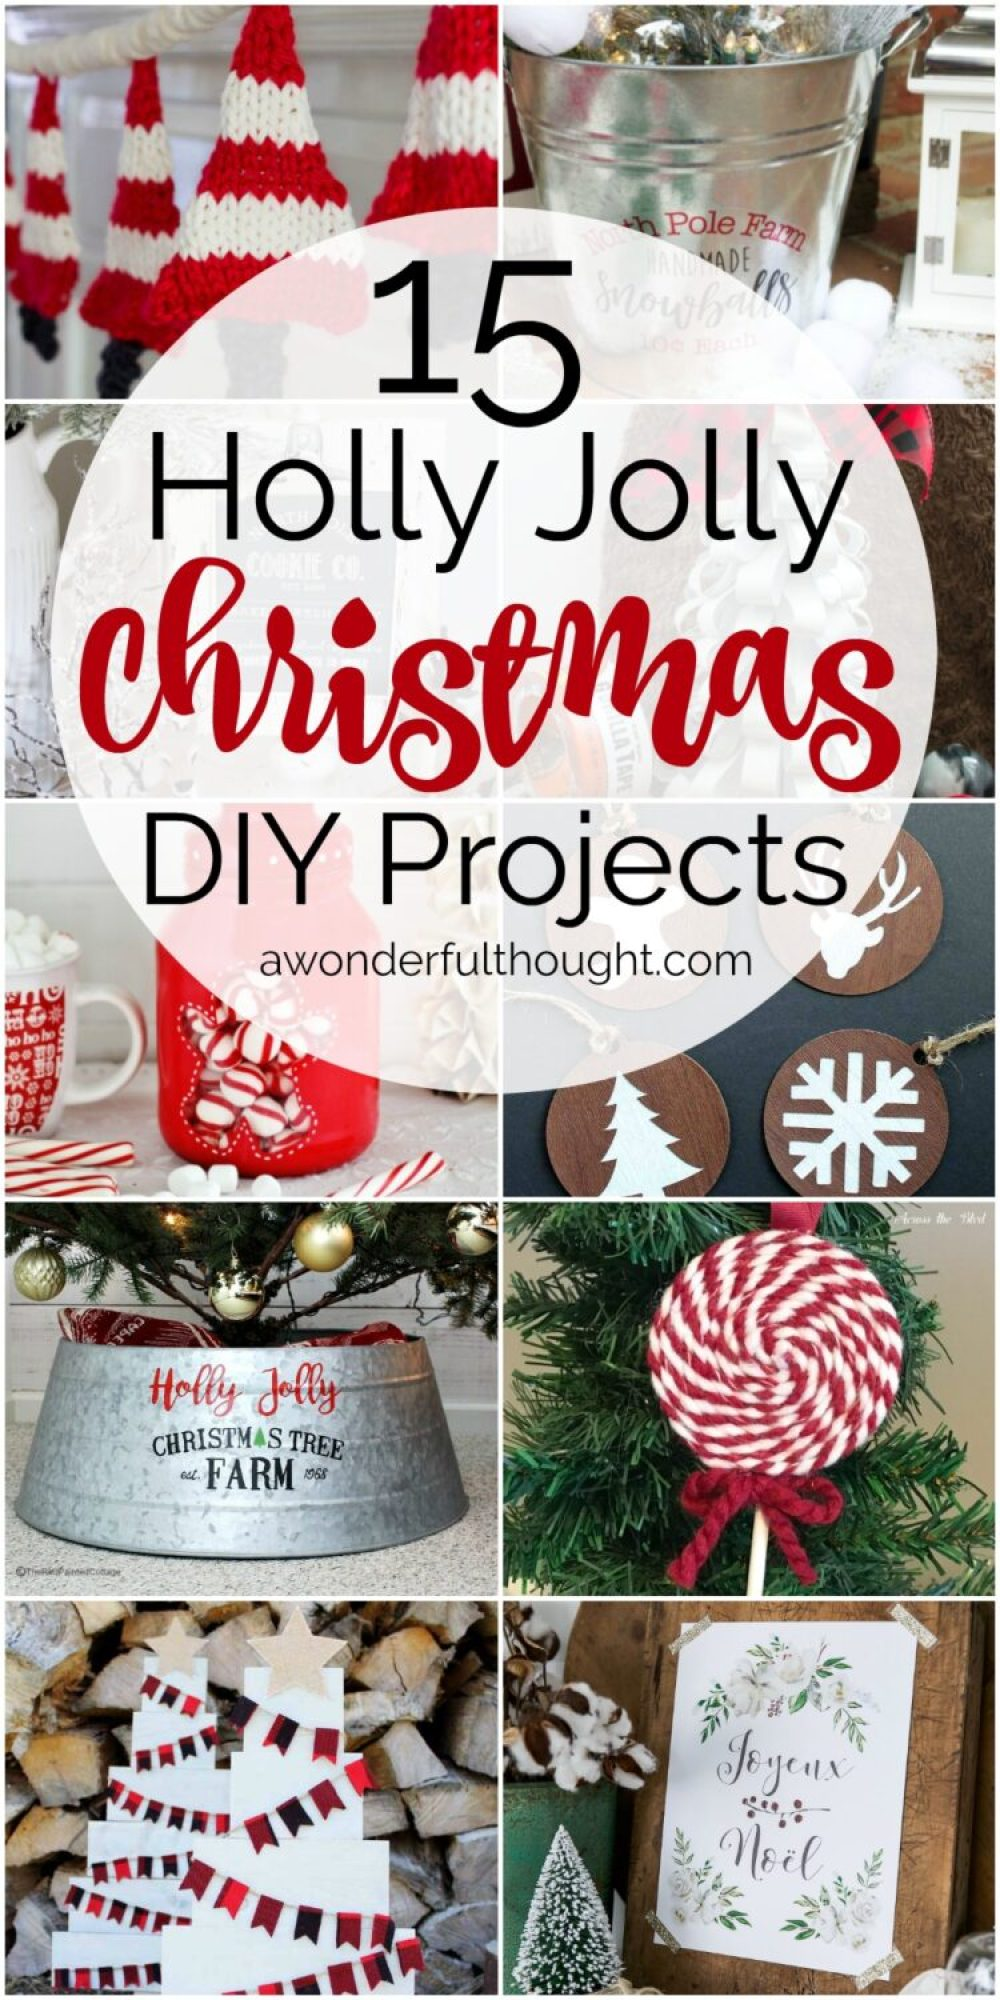 15 holly jolly christmas diy projects diy christmasdiy christmascrafts awonderfulthoughtcom